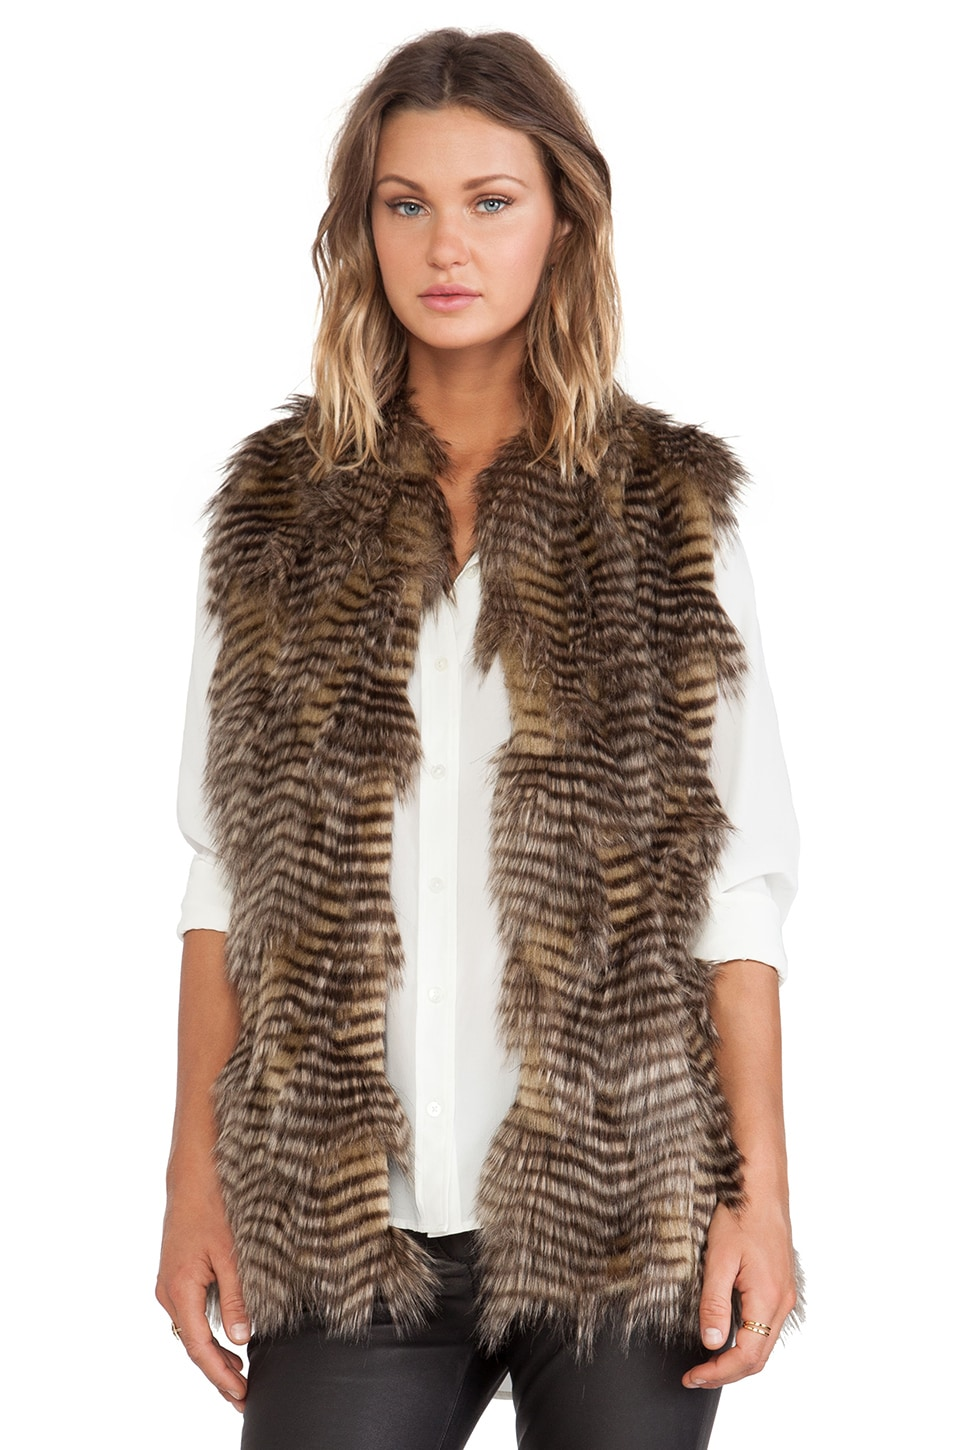 BSABLE Wendy Faux Fur Vest in Golden Feather